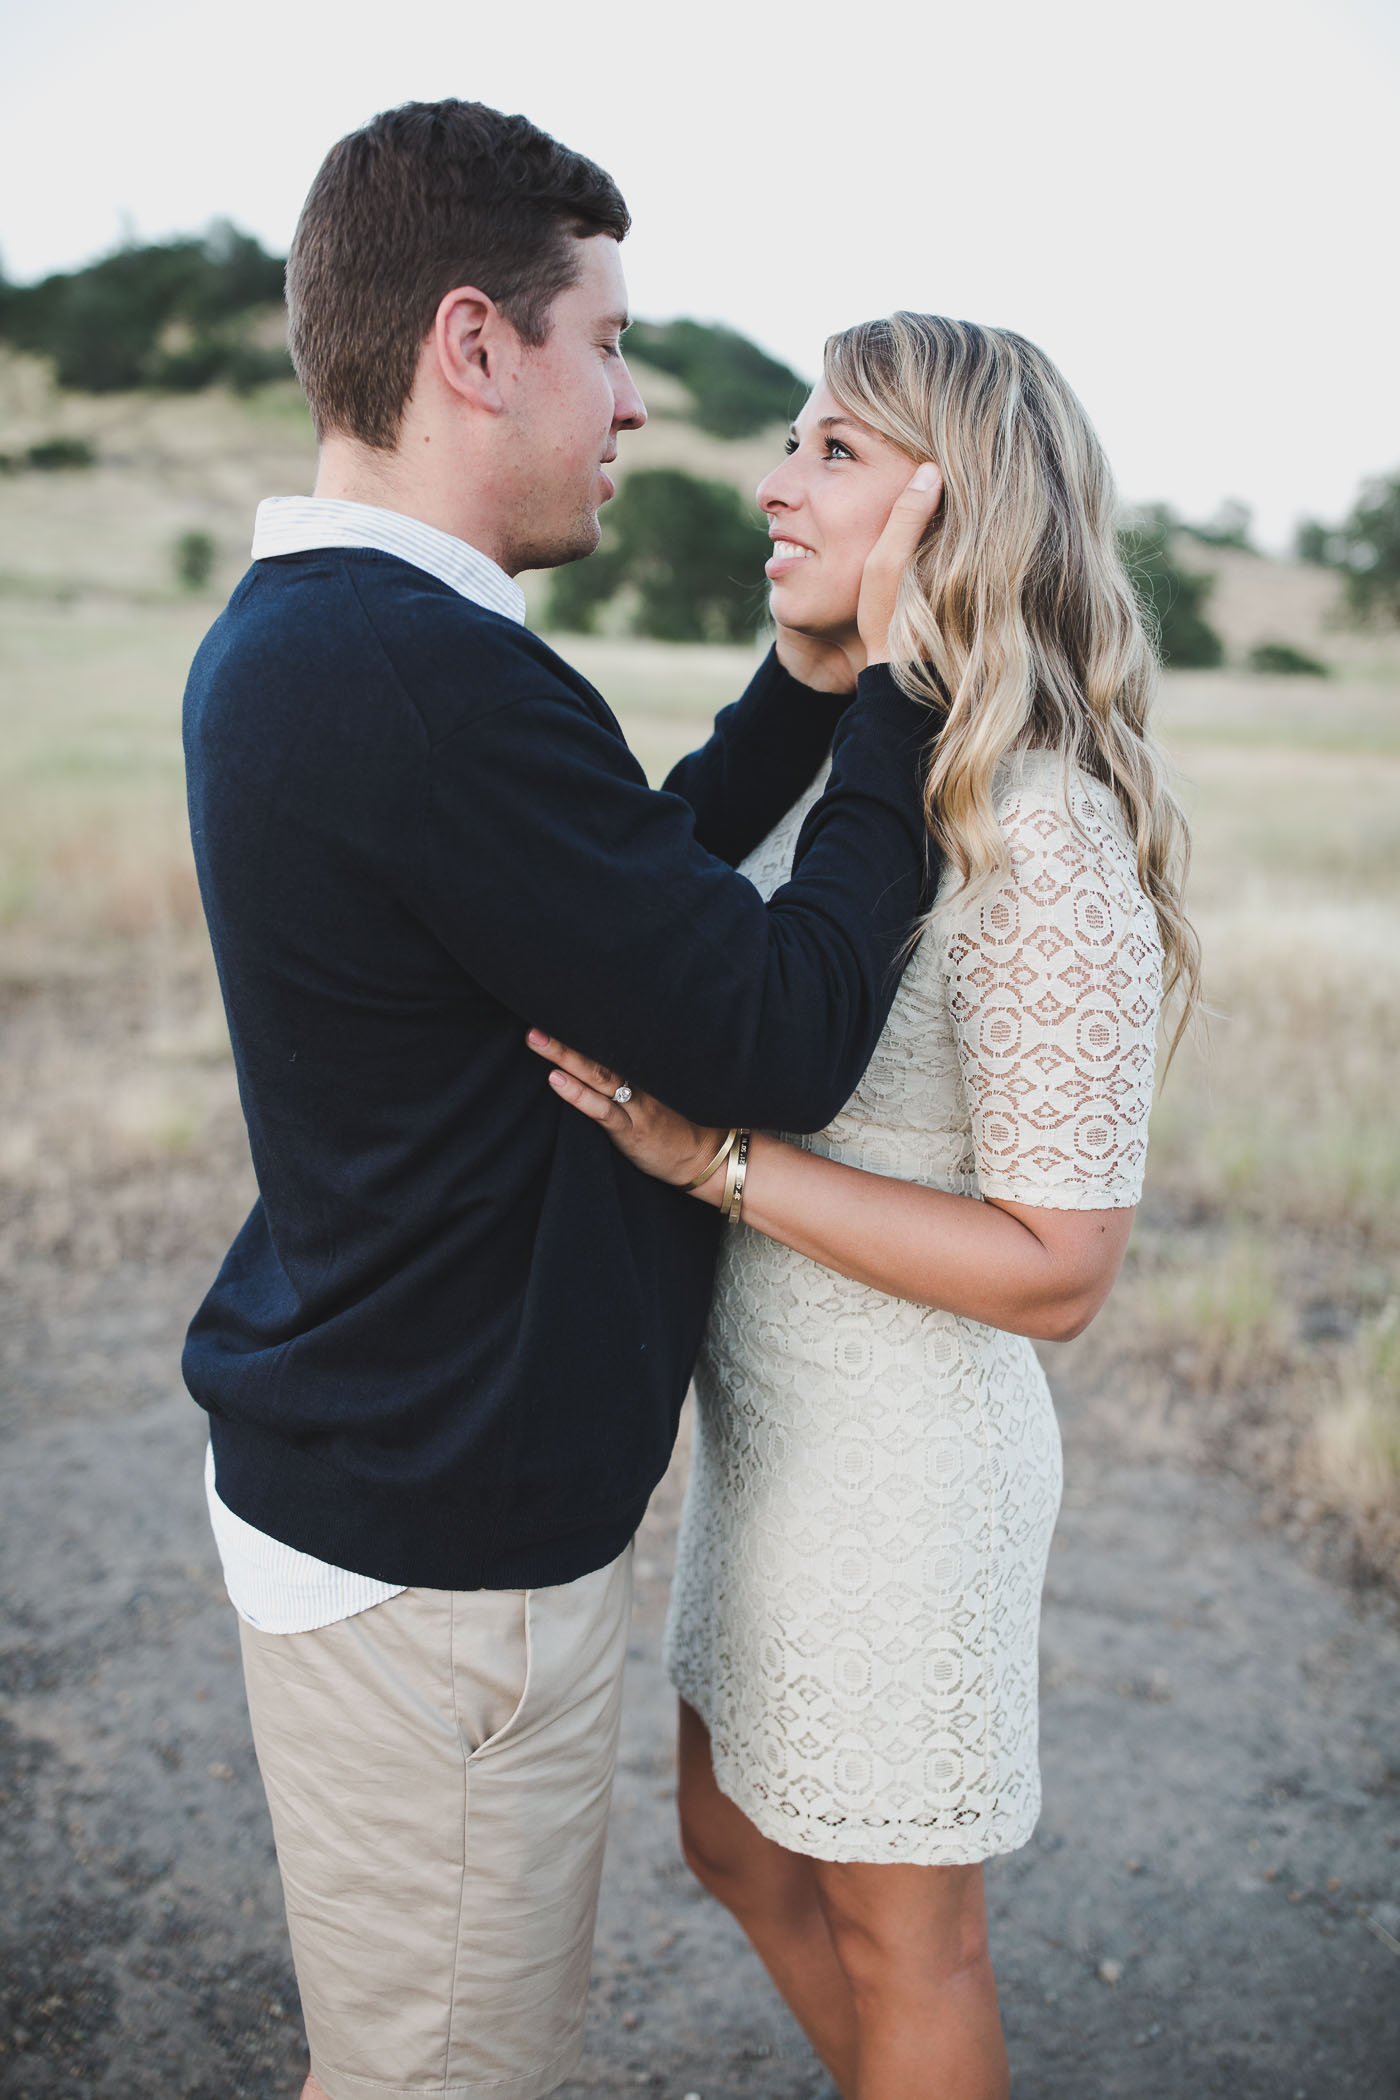 AVH_Photography_upper_bidwell_park_engagement_photography_chico_california_spring_bidwell_golf_course_0057.jpg